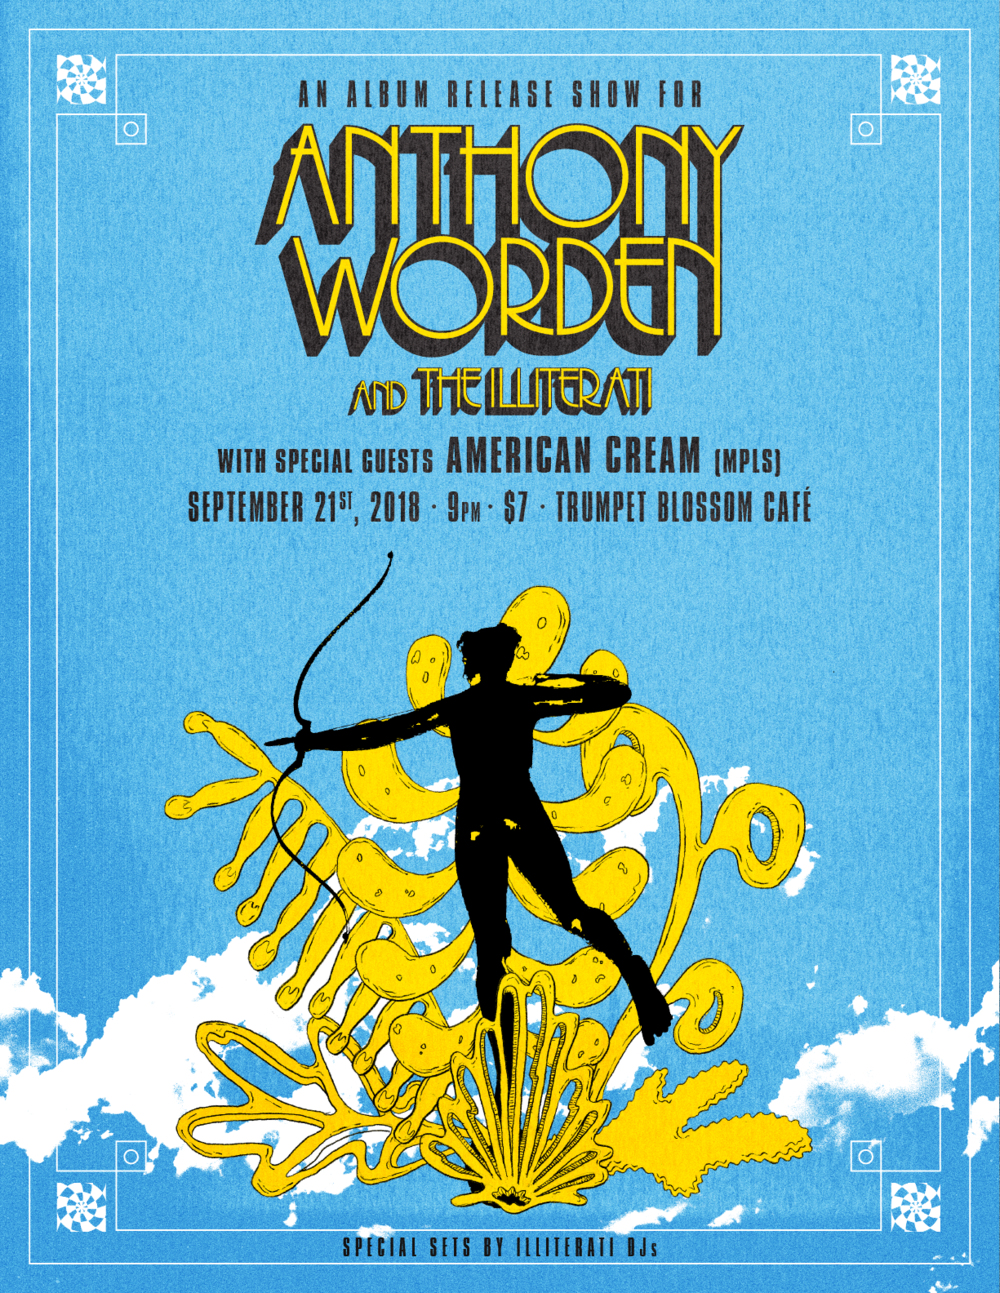 20180725_Anthony-Worden_Release-Poster_4.png